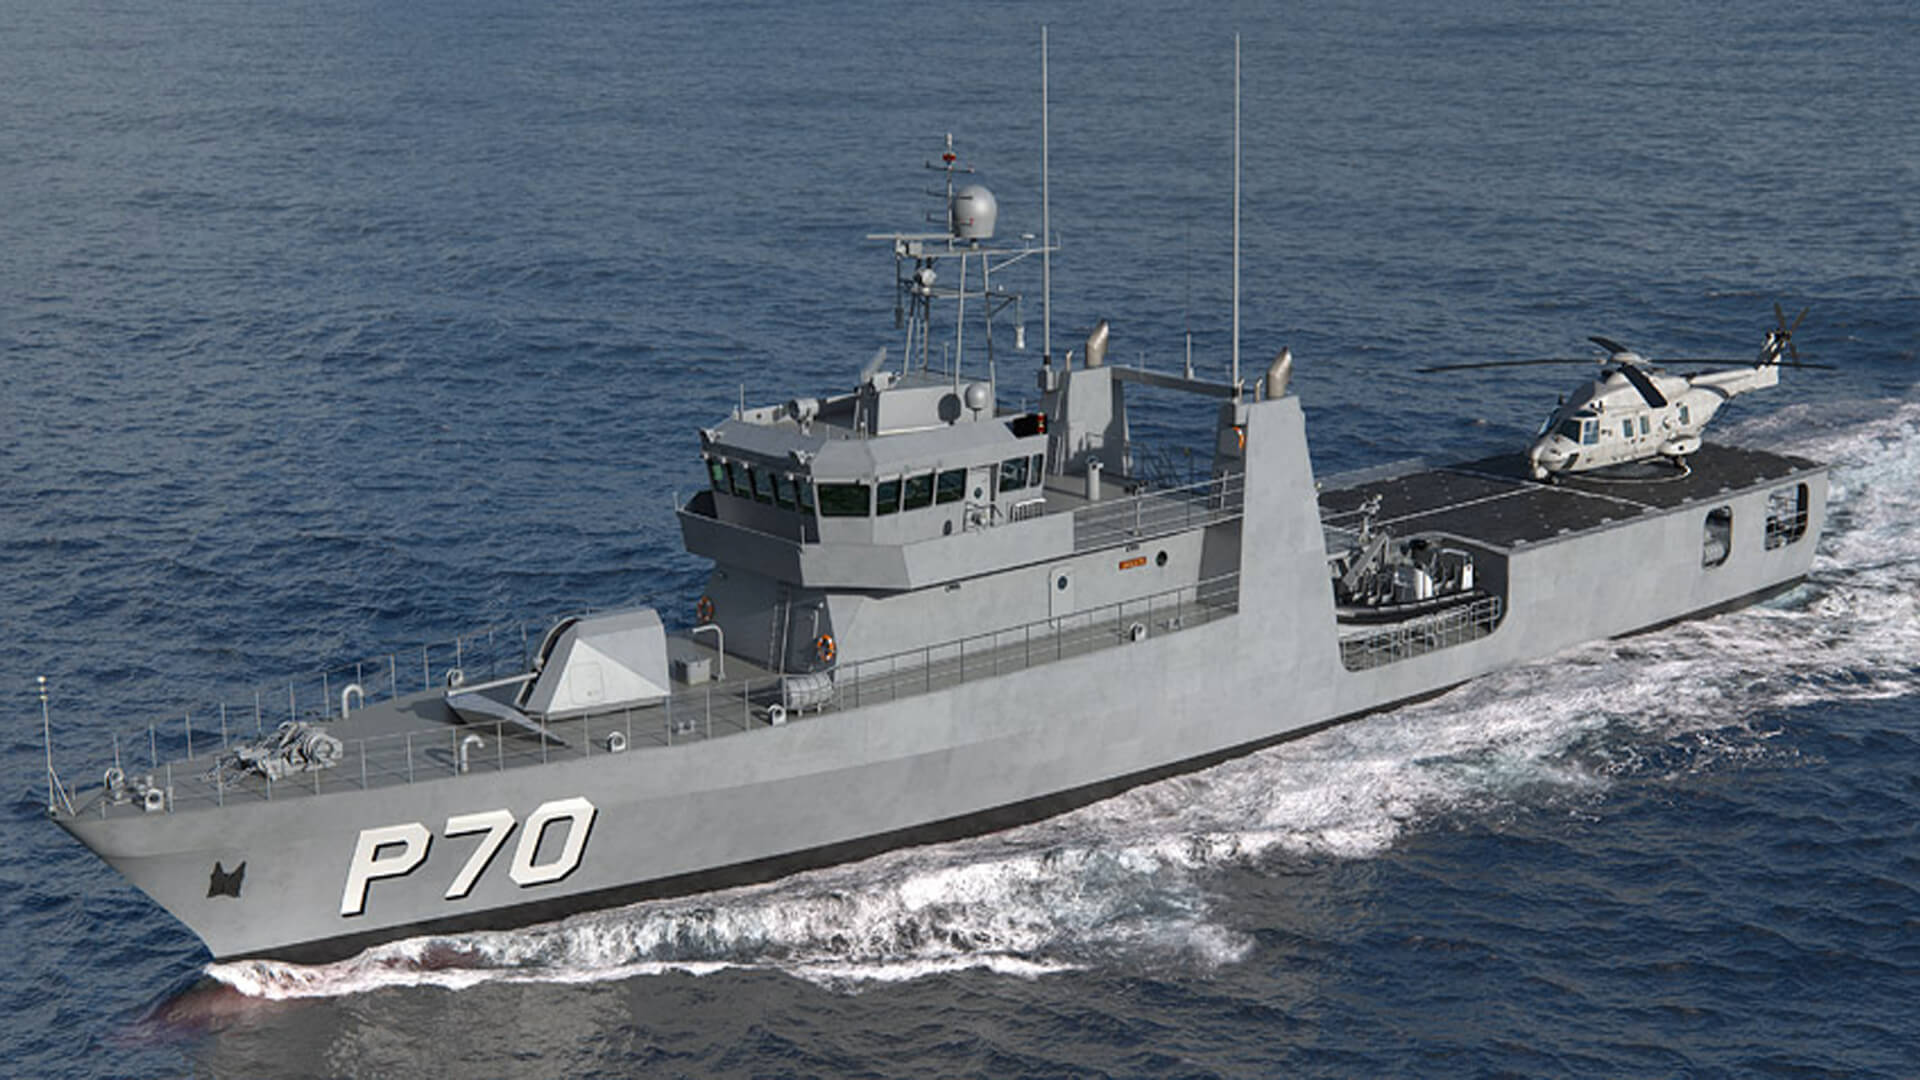 images/vessels/01-patrol-craft/01-series-opv/01-rolls-royce-skadi-70-opv/01.jpg